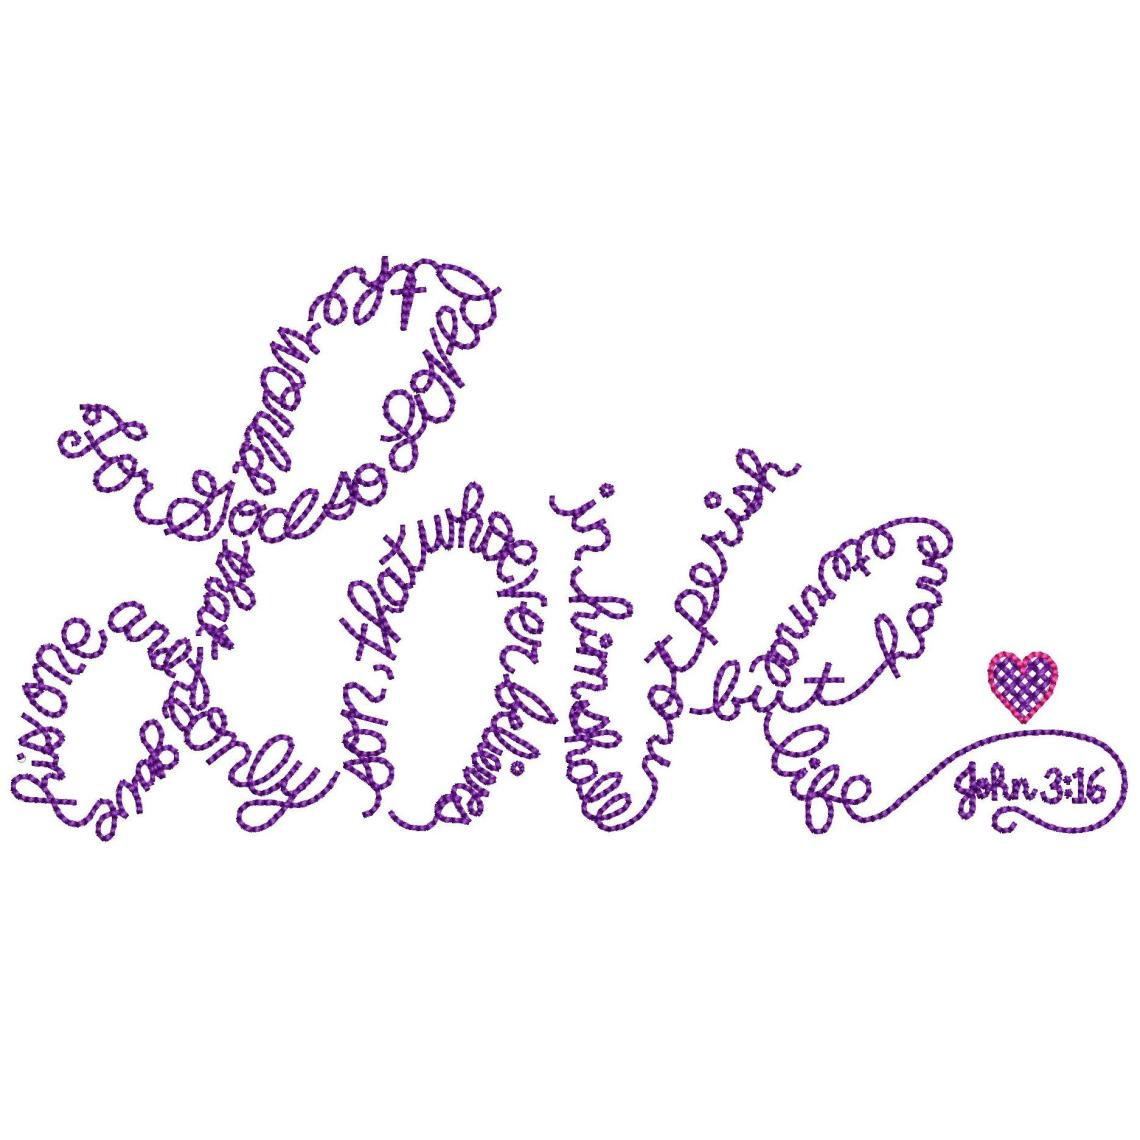 Download John 3:16 For God So Loved The World Machine Embroidery Design